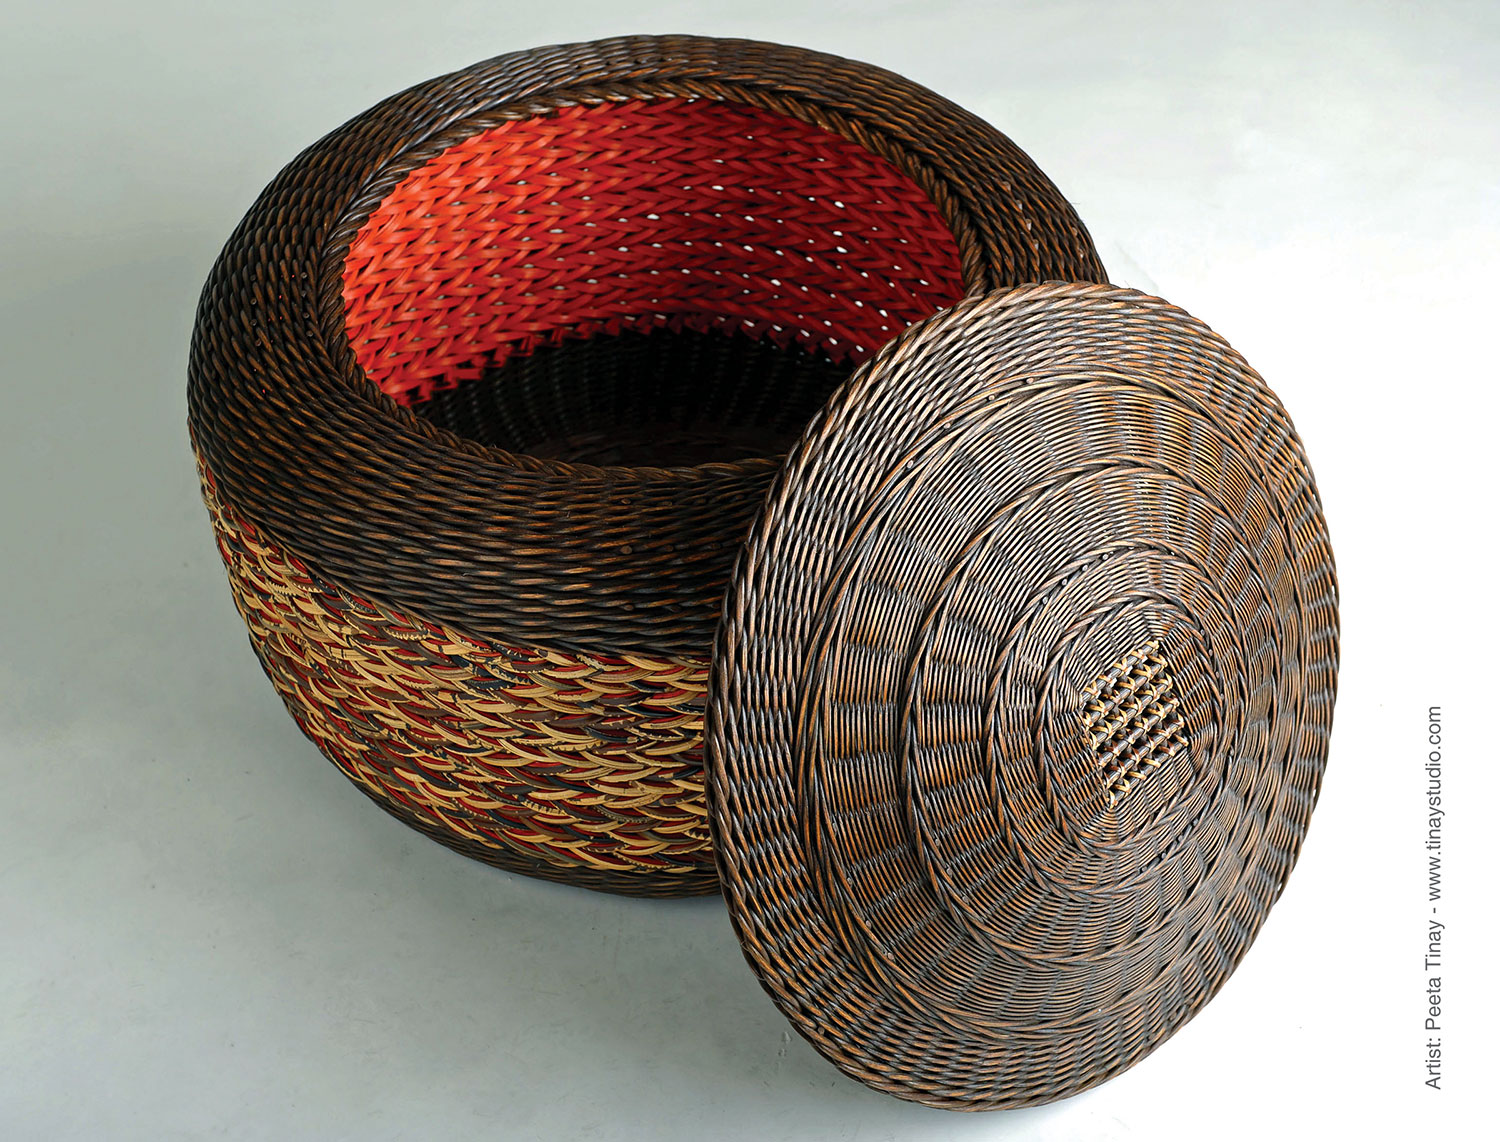 Peeta-Tinay-orange-lidded-basket.jpg